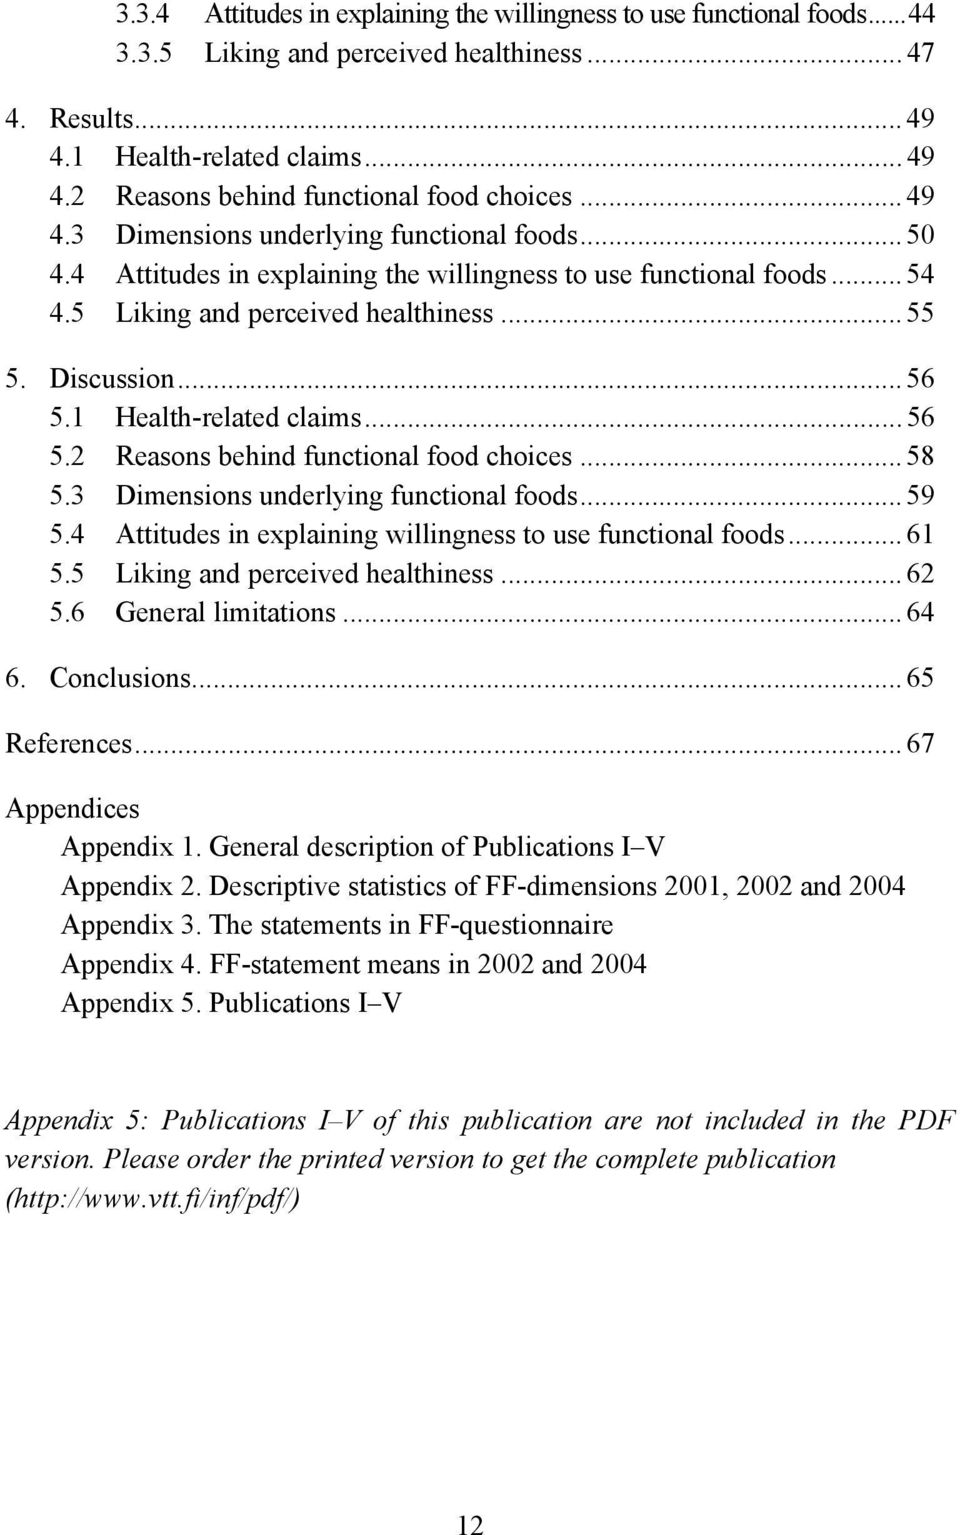 1 Health-related claims... 56 5.2 Reasons behind functional food choices... 58 5.3 Dimensions underlying functional foods... 59 5.4 Attitudes in explaining willingness to use functional foods... 61 5.